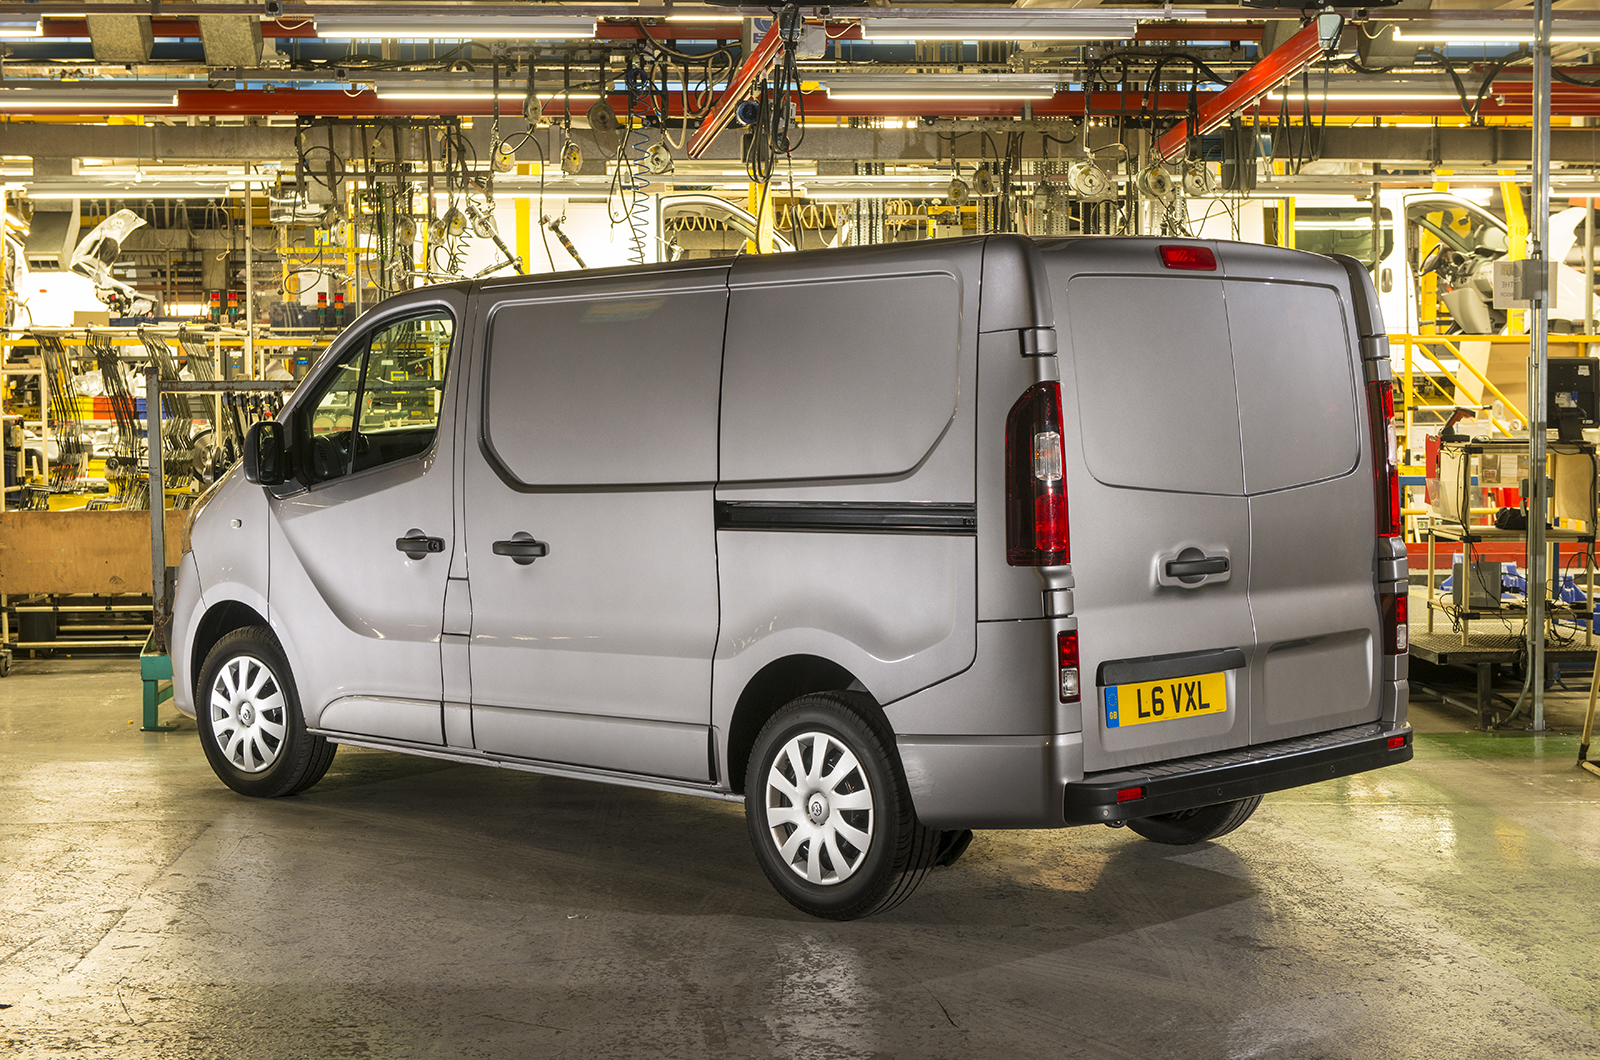 new vauxhall vivaro and renault trafic vans to launch this summer autocar. Black Bedroom Furniture Sets. Home Design Ideas